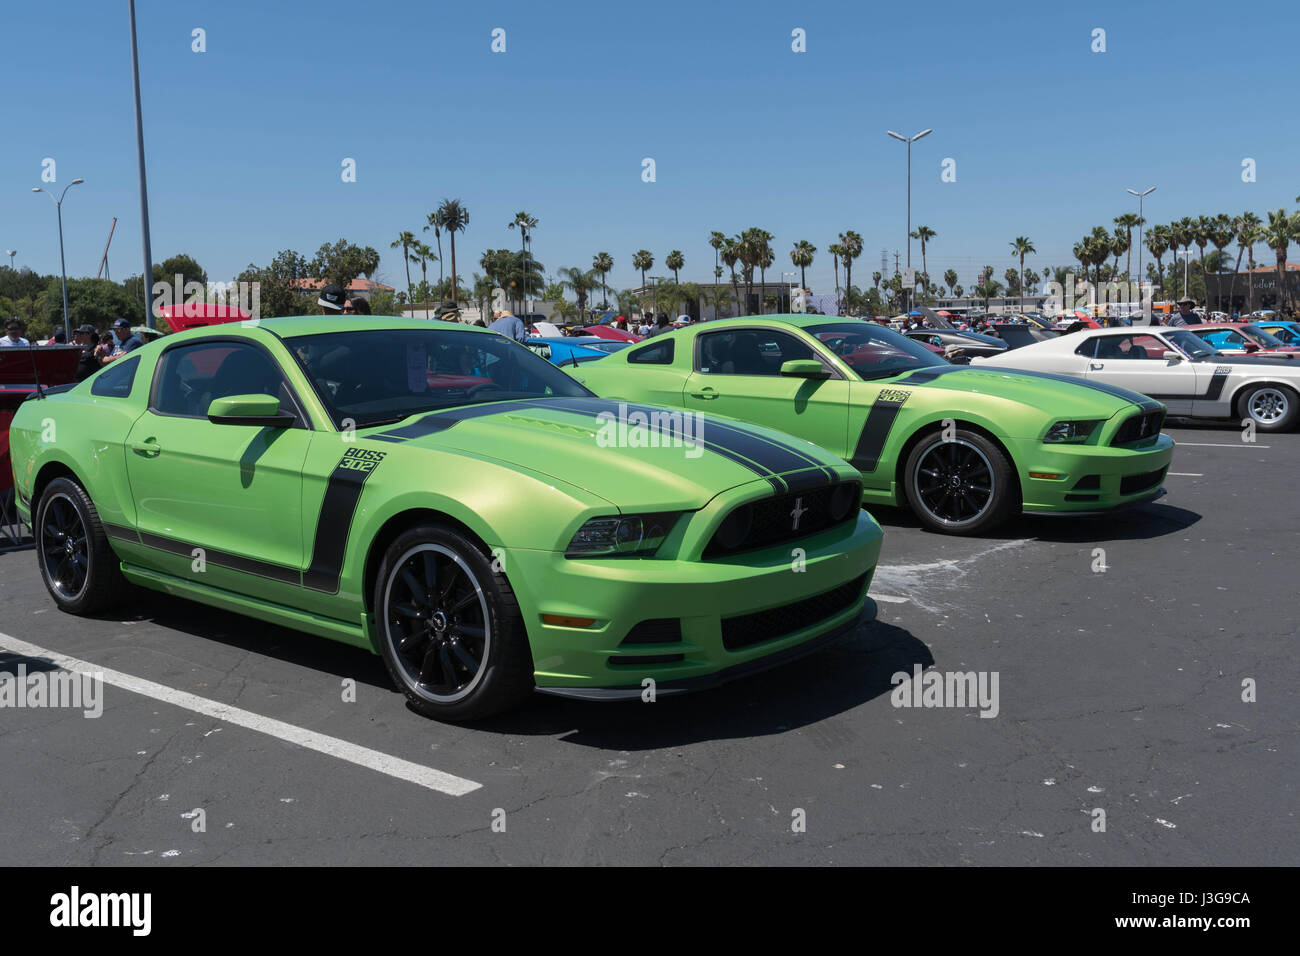 Buena park usa april 30 2017 ford mustang boss 302 fifth generation on display during the fabulous fords forever